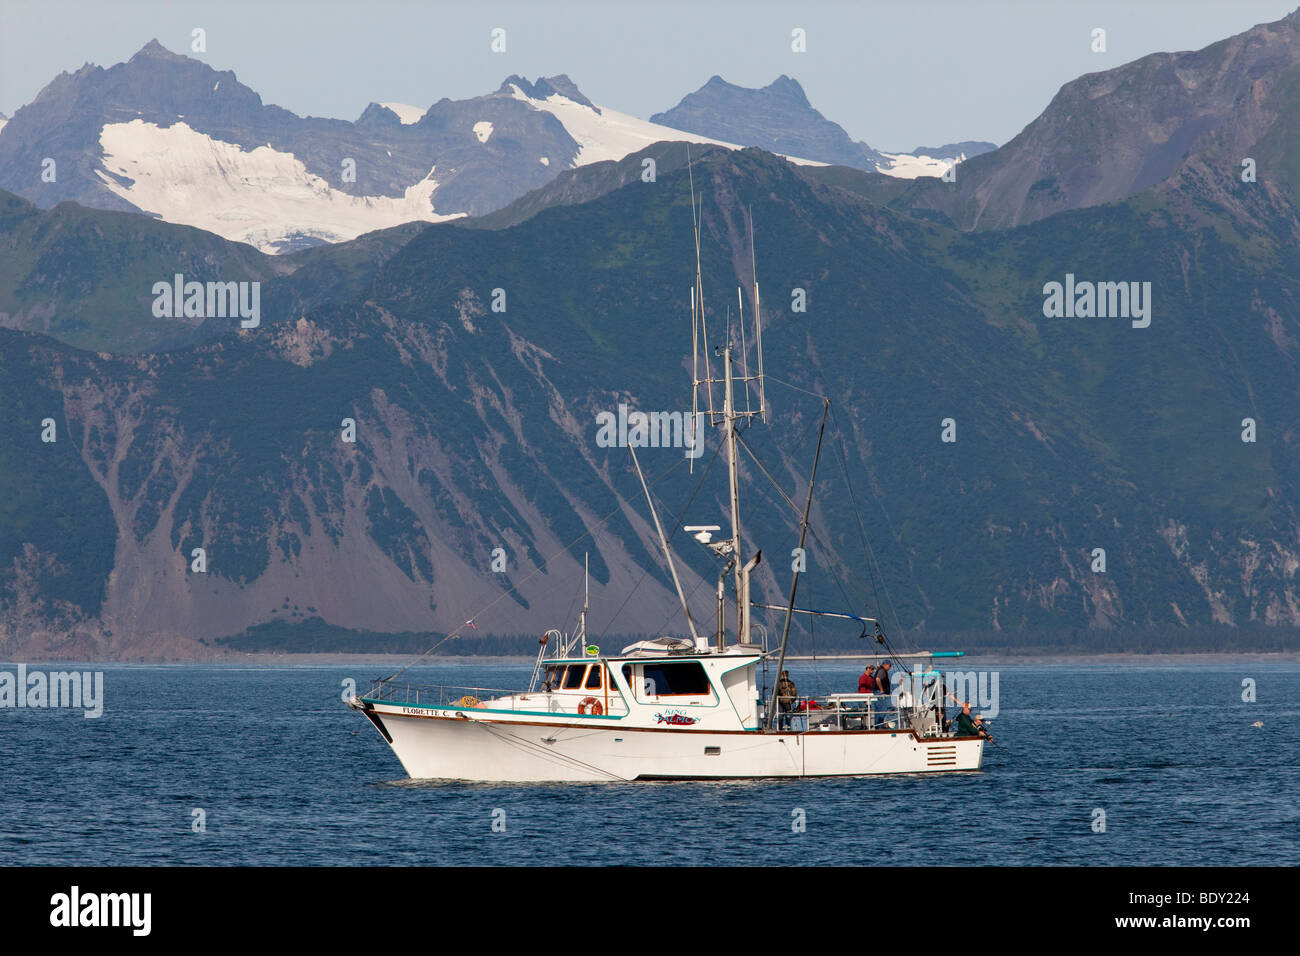 Seward, Alaska - A sport fishing boat in Resurrection Bay. Stock Photo